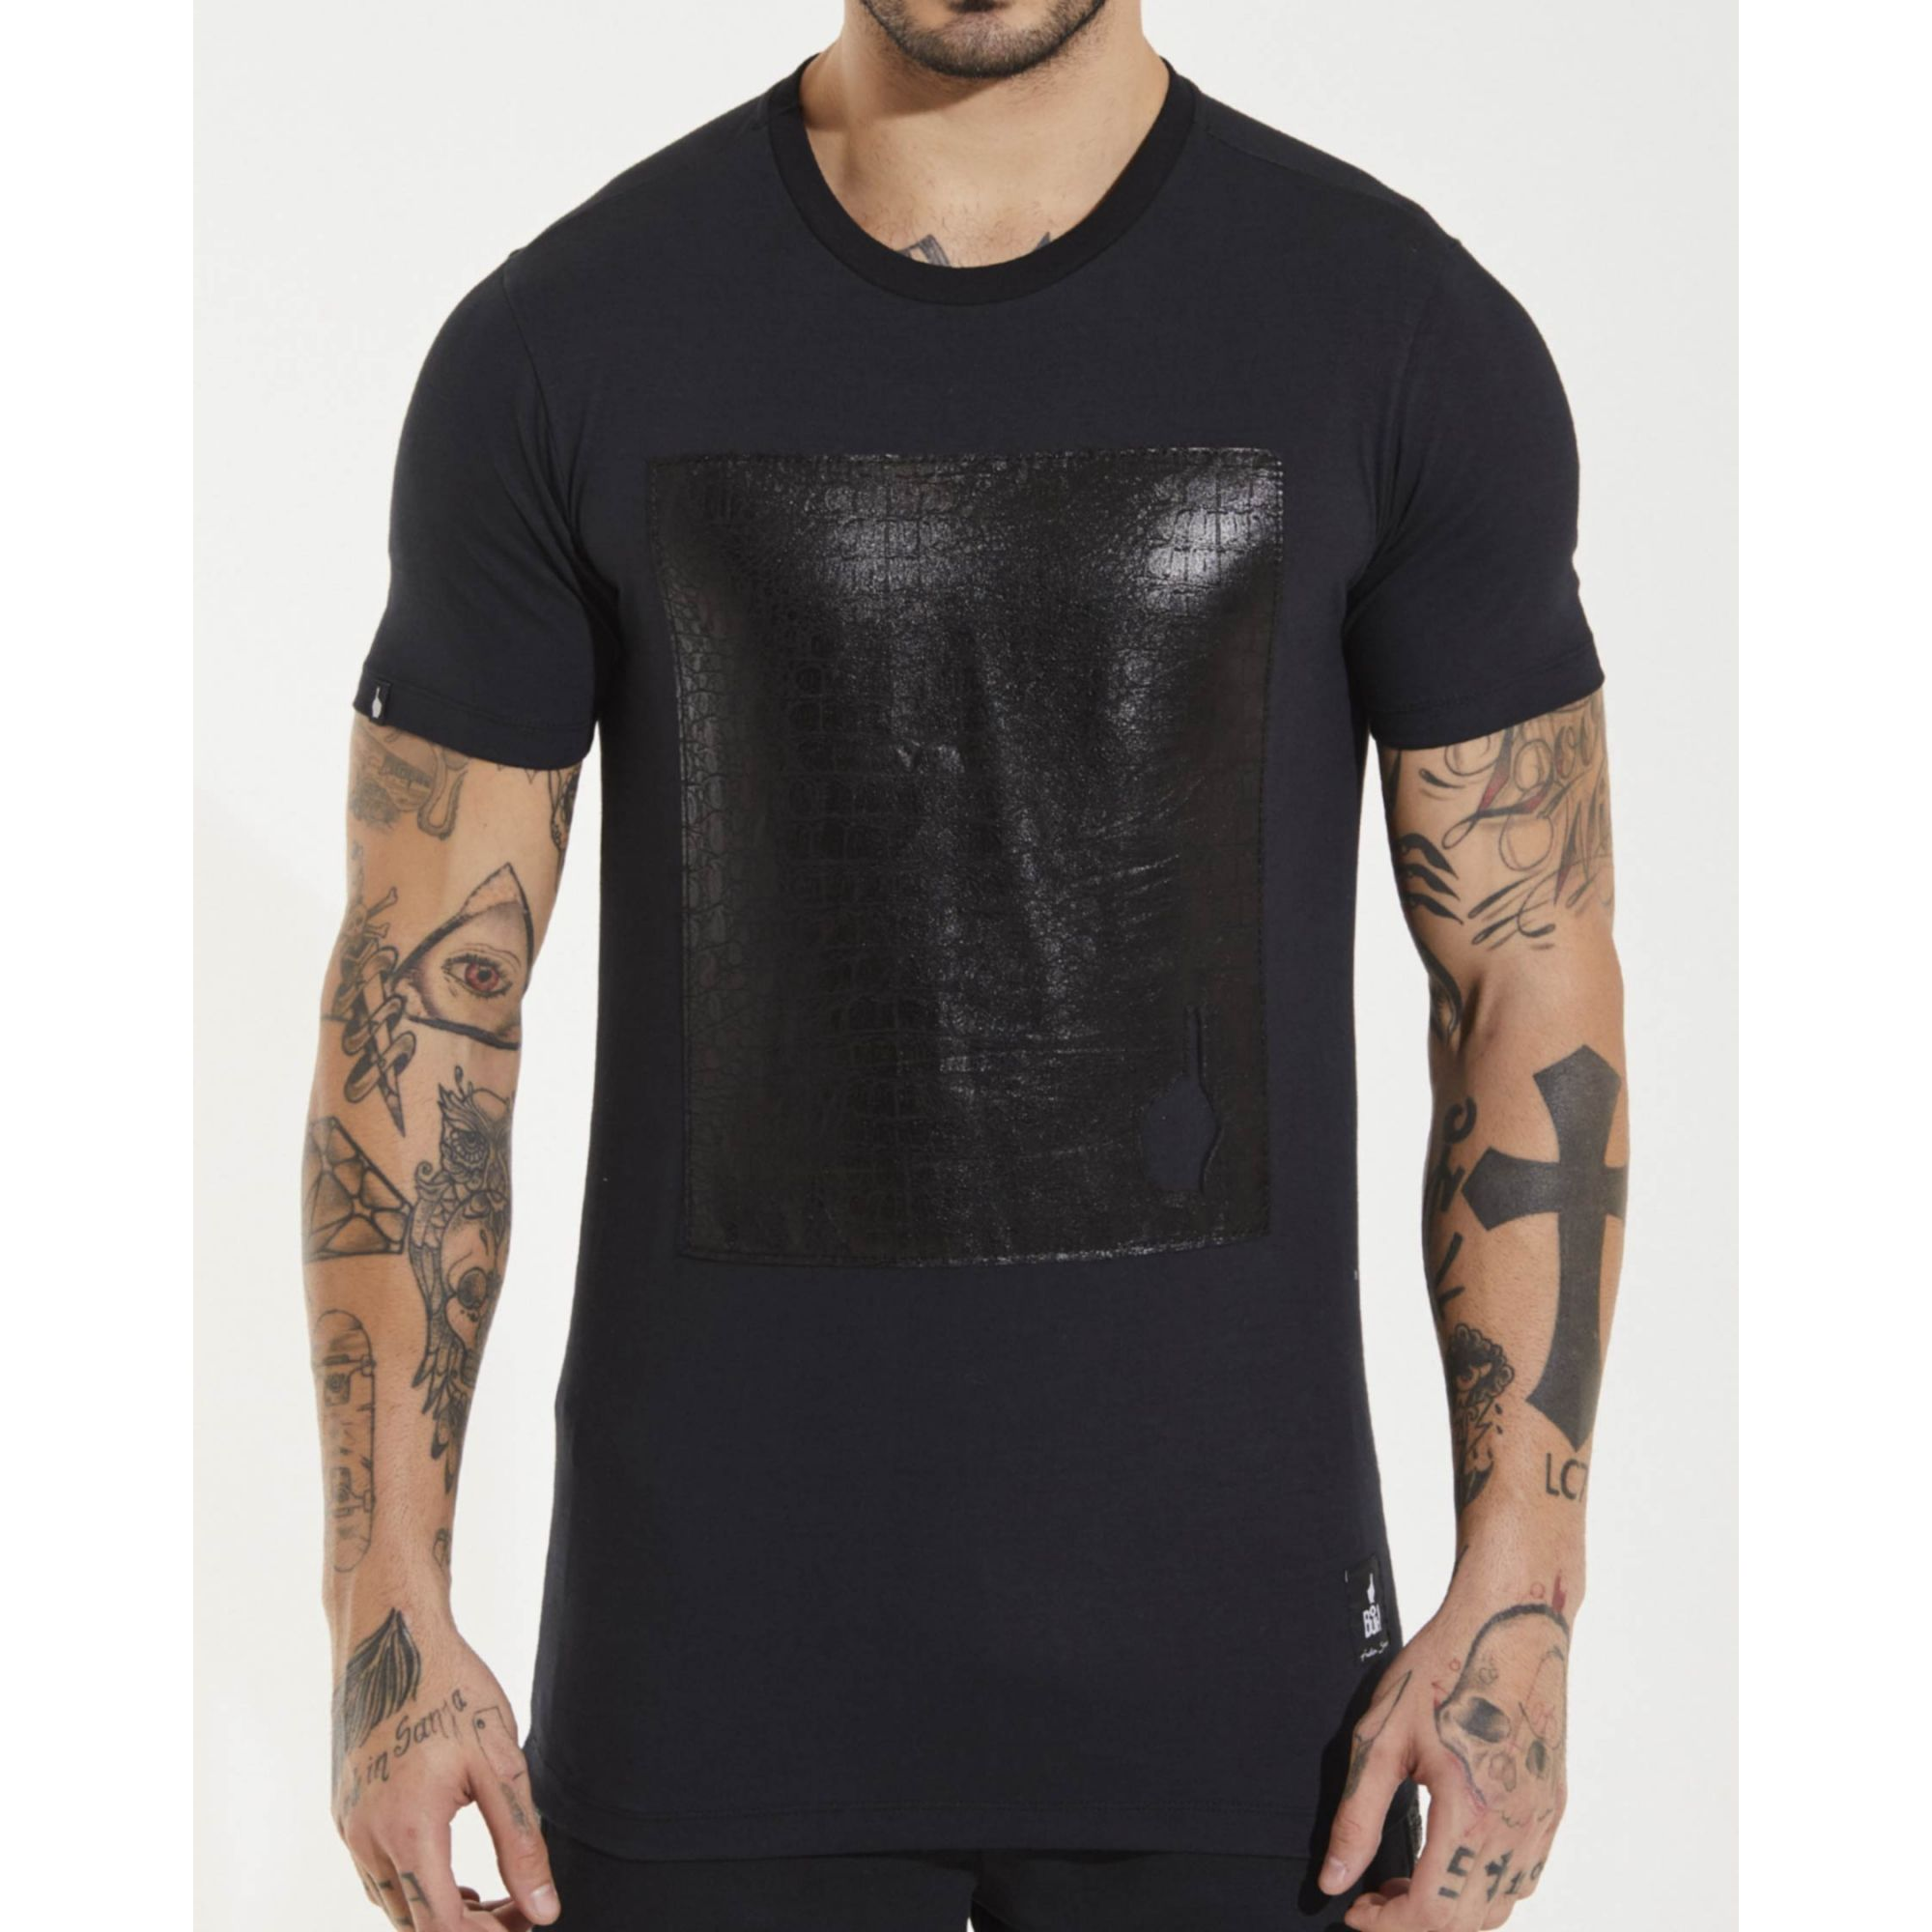 Camiseta Buh Croco Black